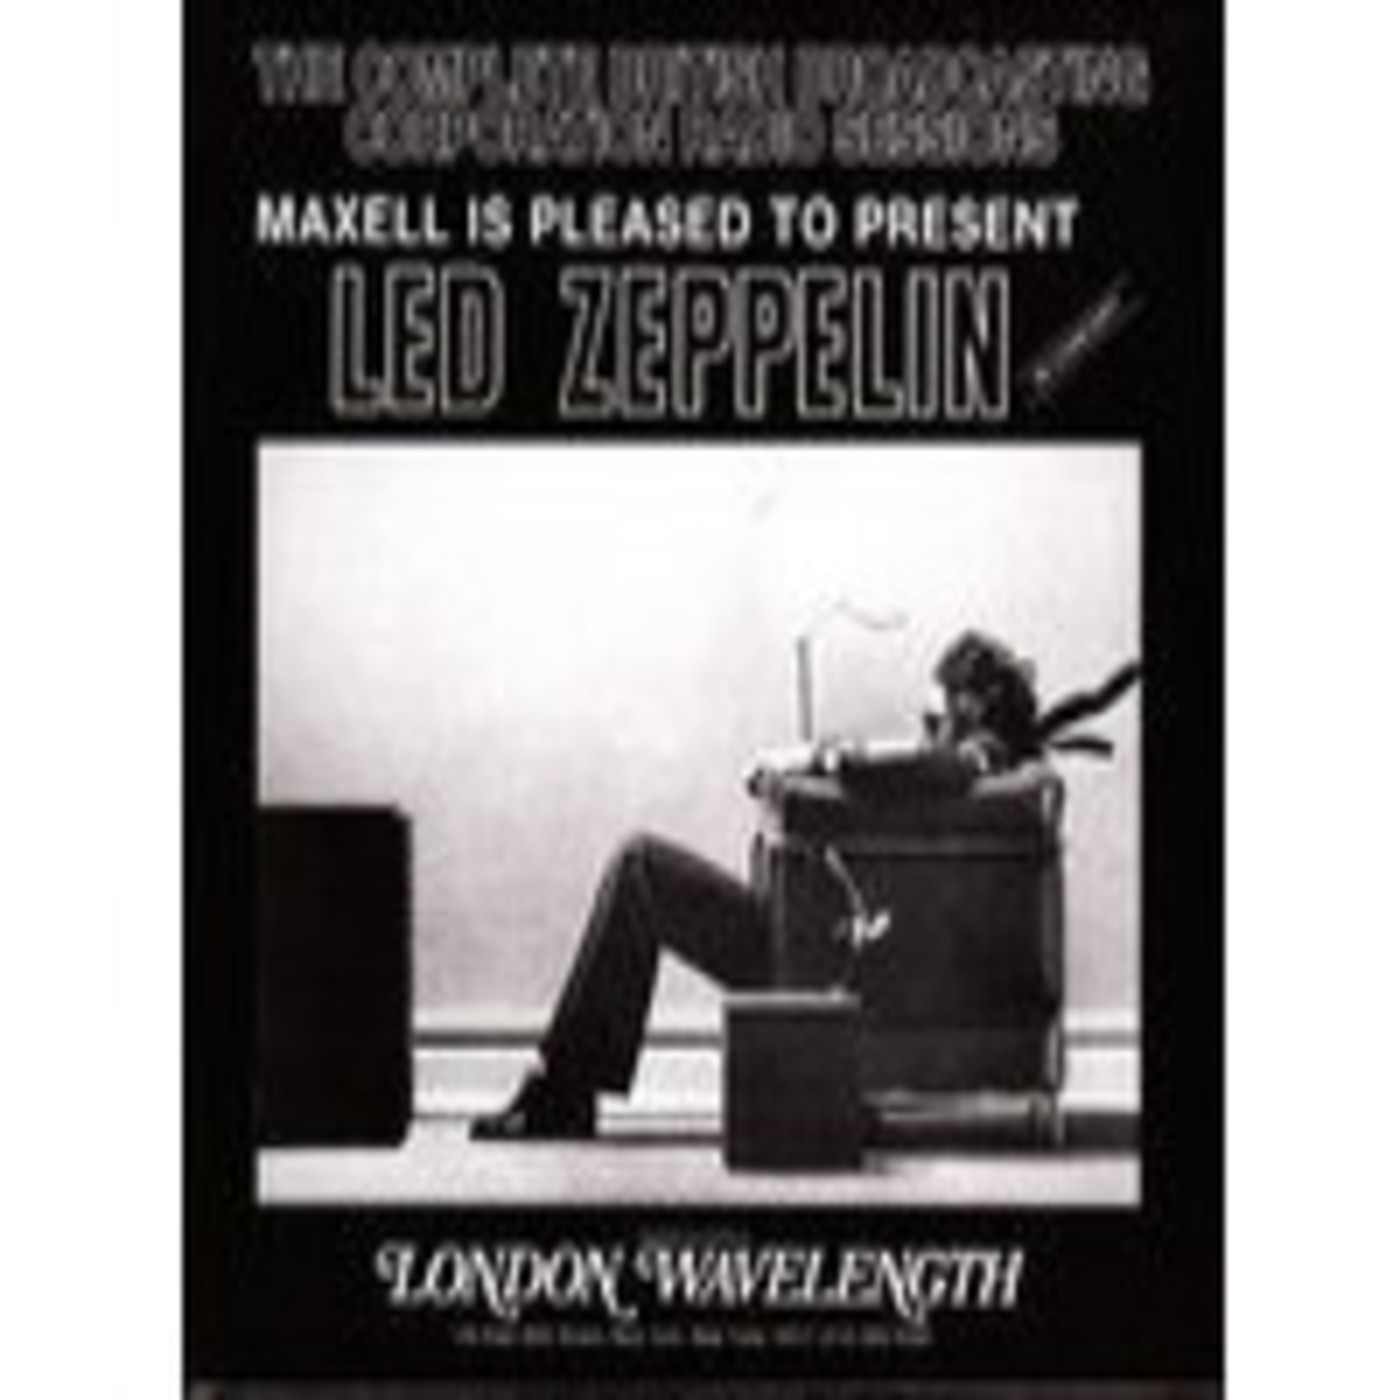 Led Zeppelin - The Complete BBC Sessions (1969-1971) CD's 01 & 02